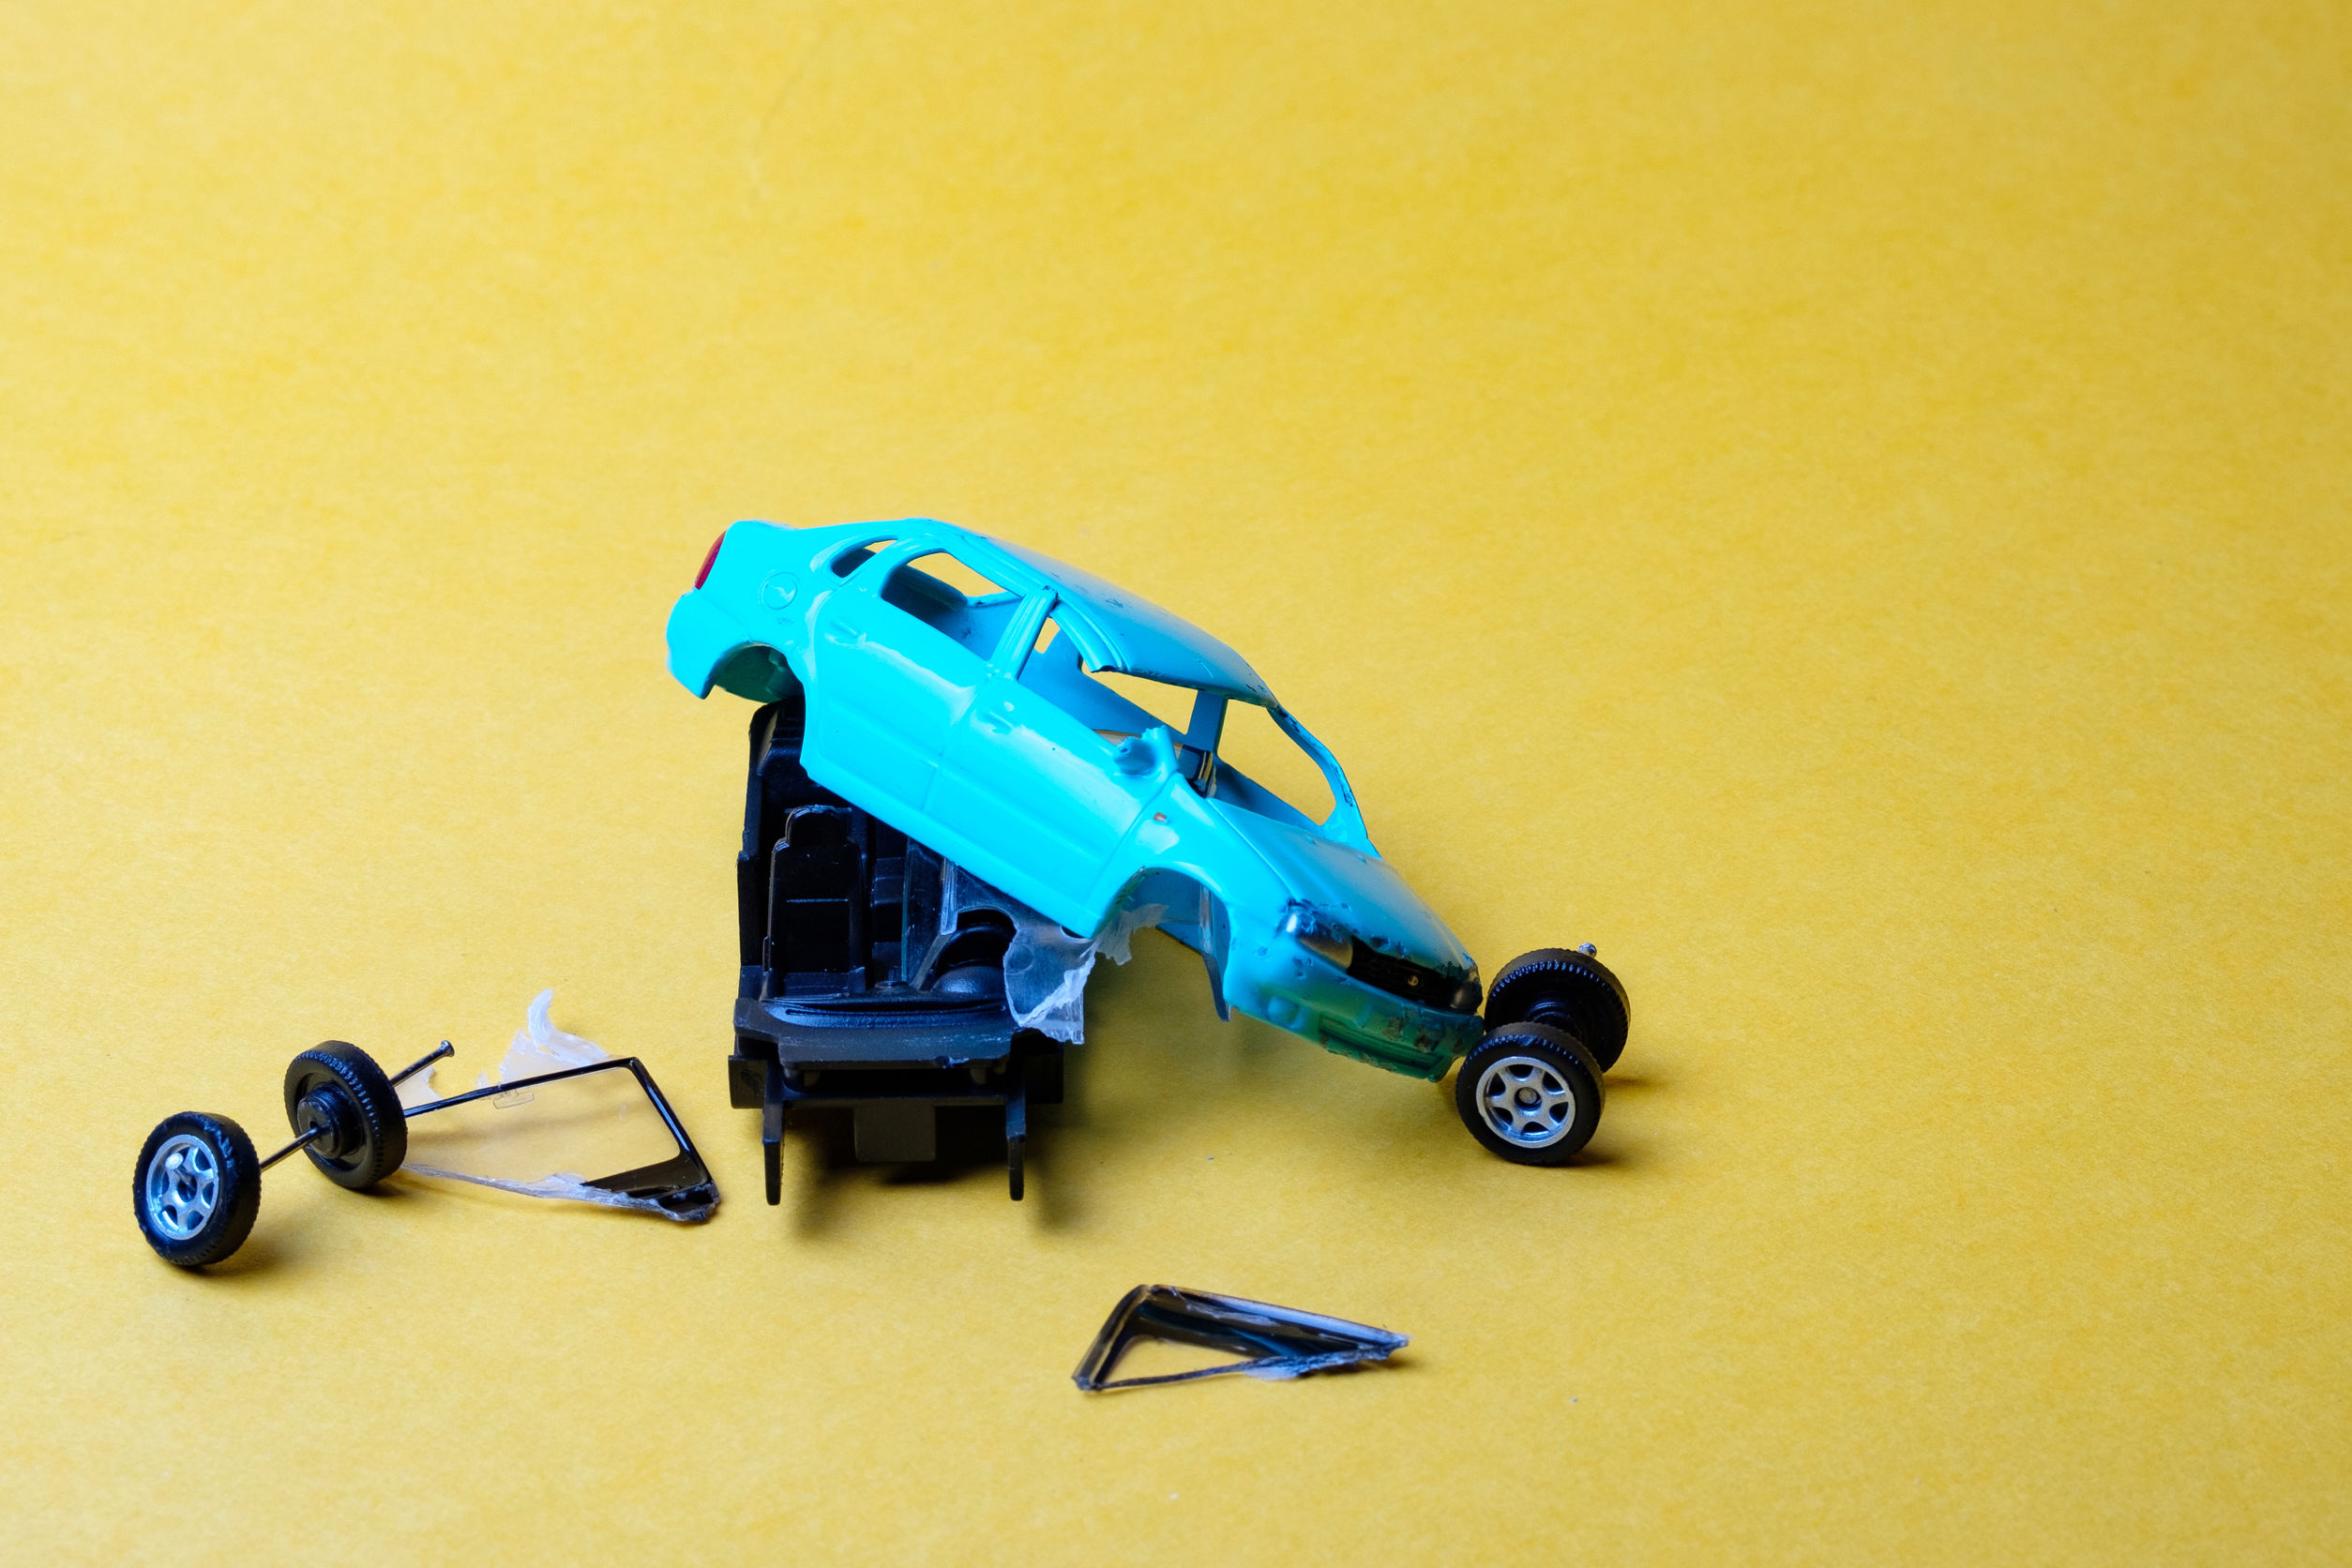 toy car broken into pieces, wheels and glass fell off, yellow background